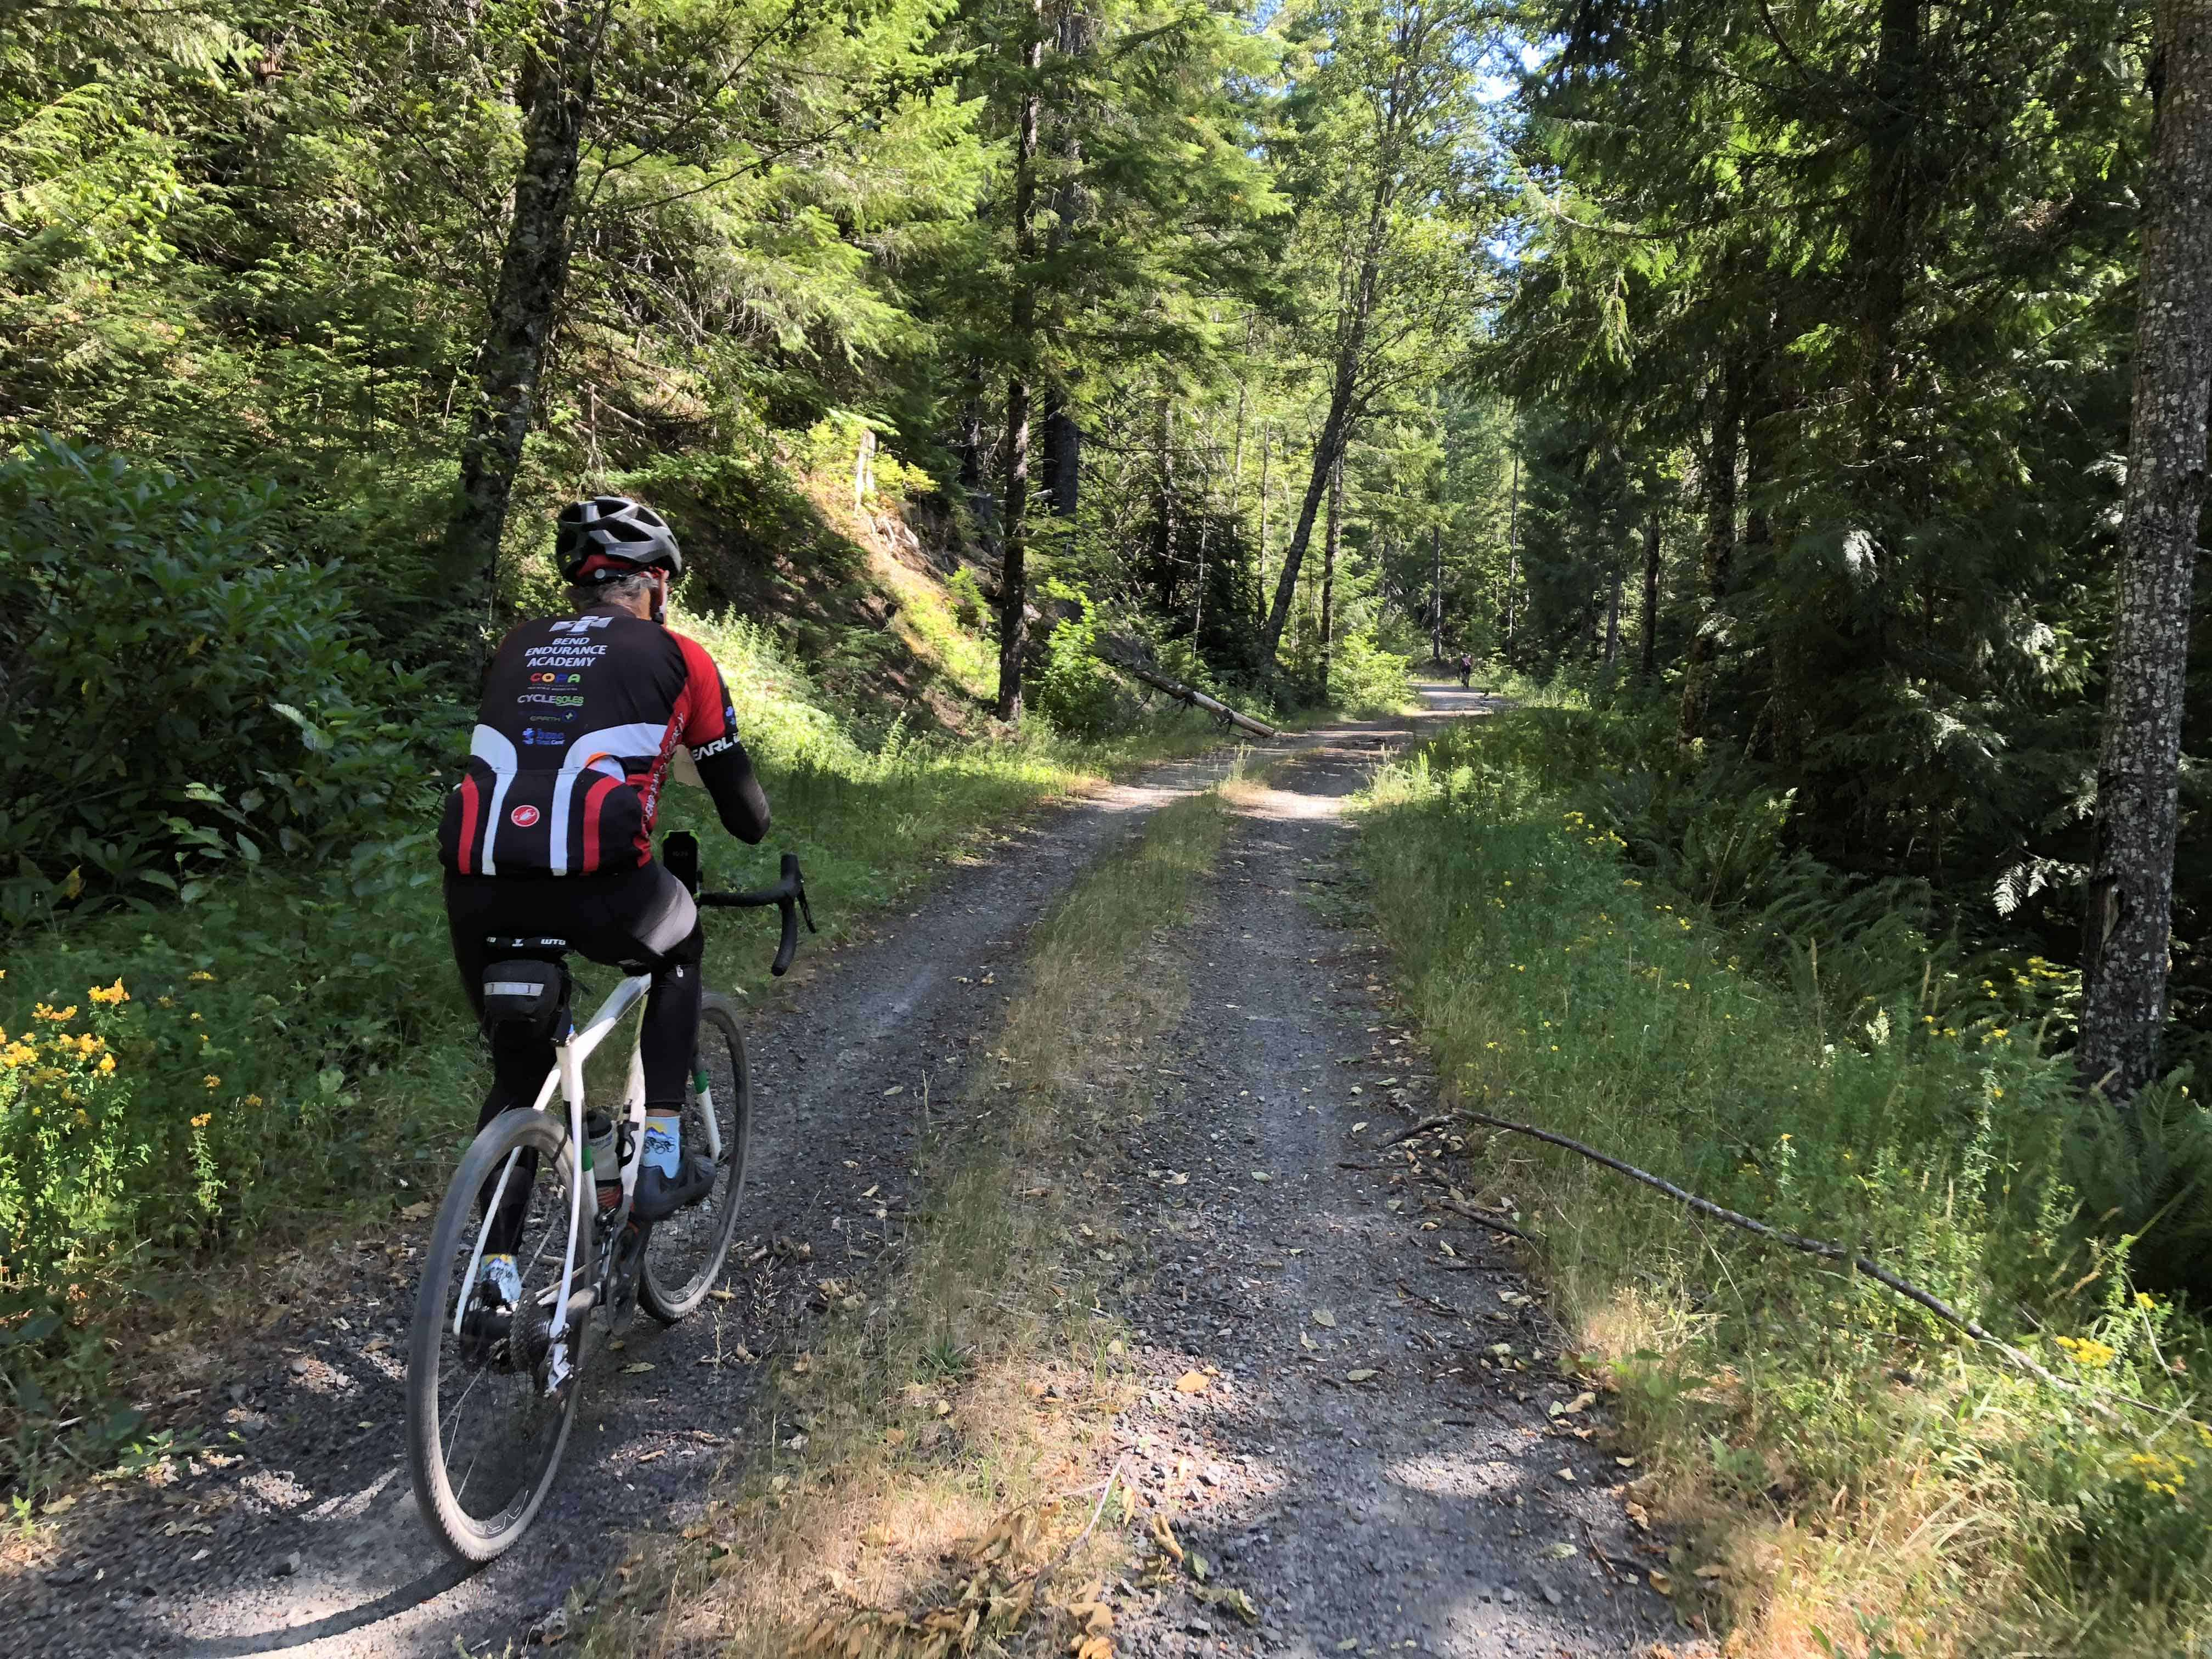 Gravel griding on Forest Road 1012, Willamette National Forest